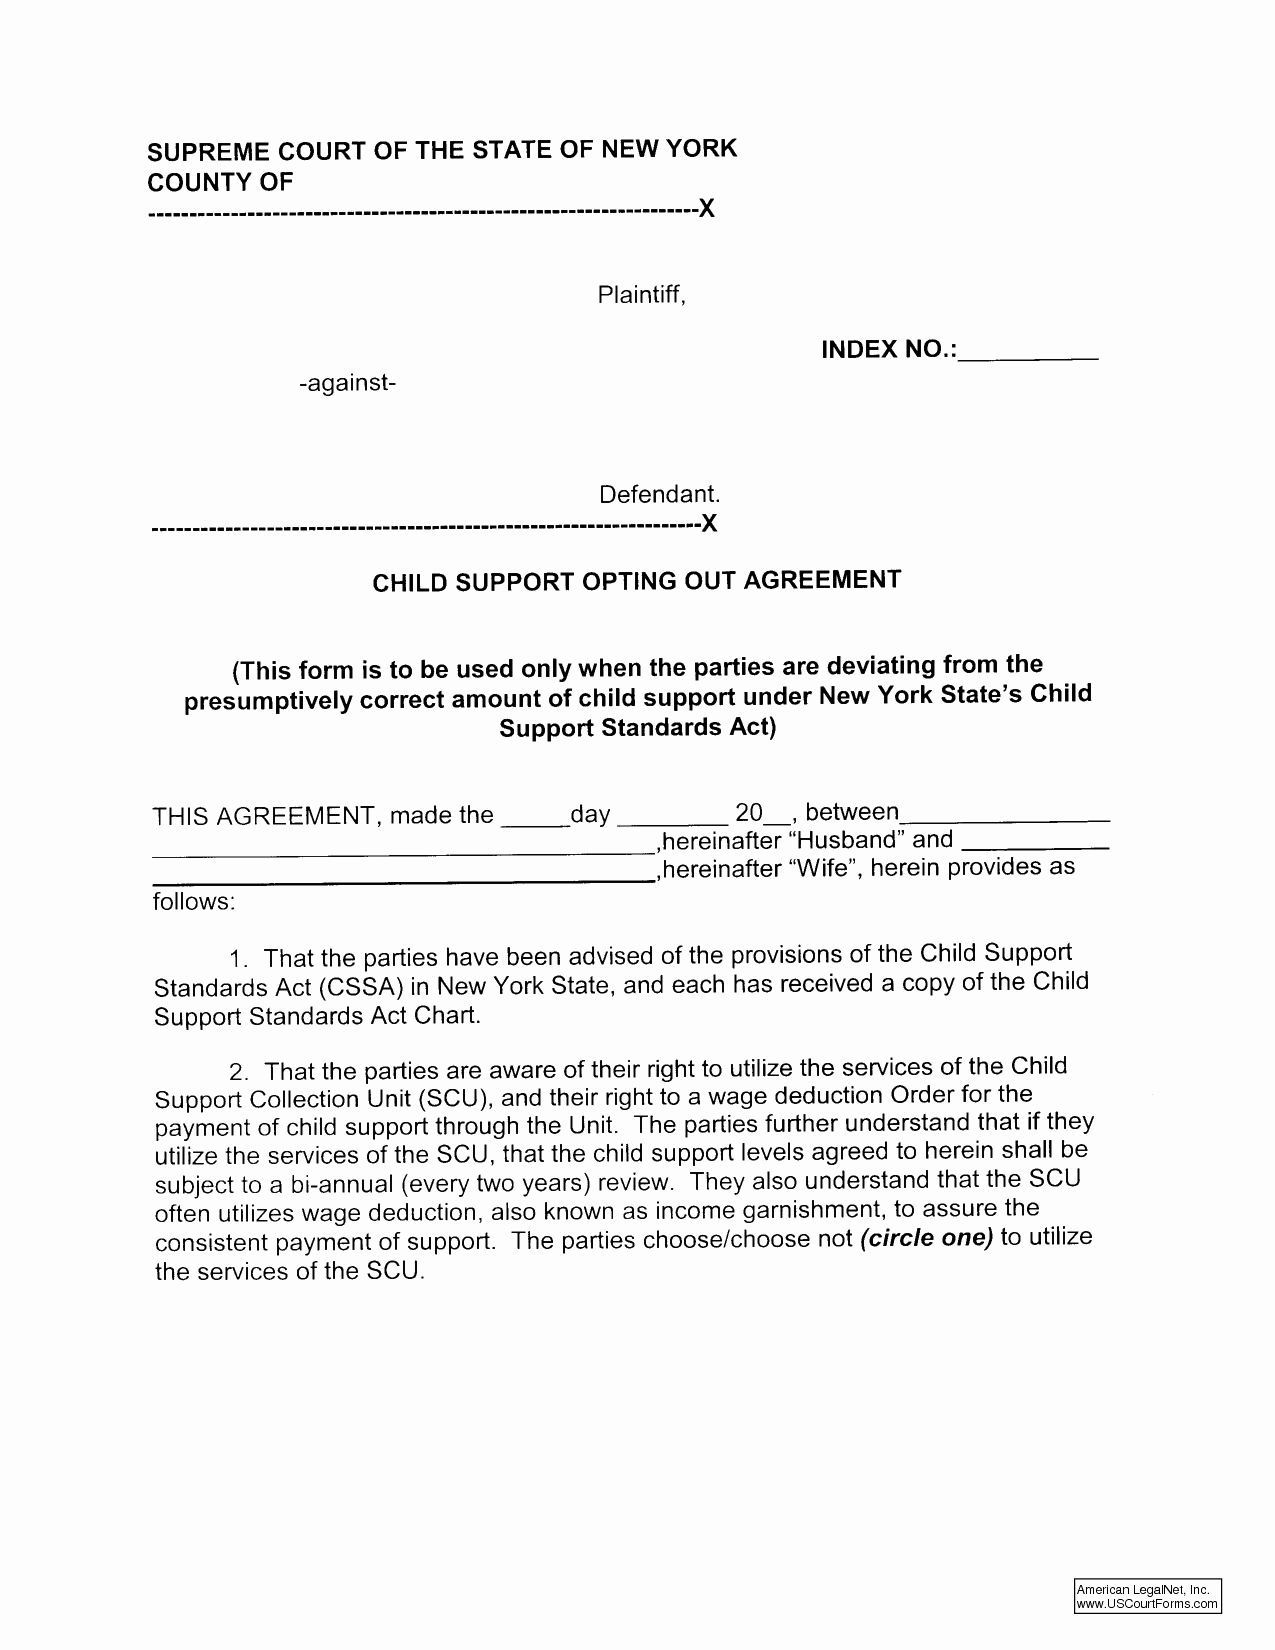 Sample Child Support Letter Template - Child Support Agreement Template Beautiful Child Support Agreement